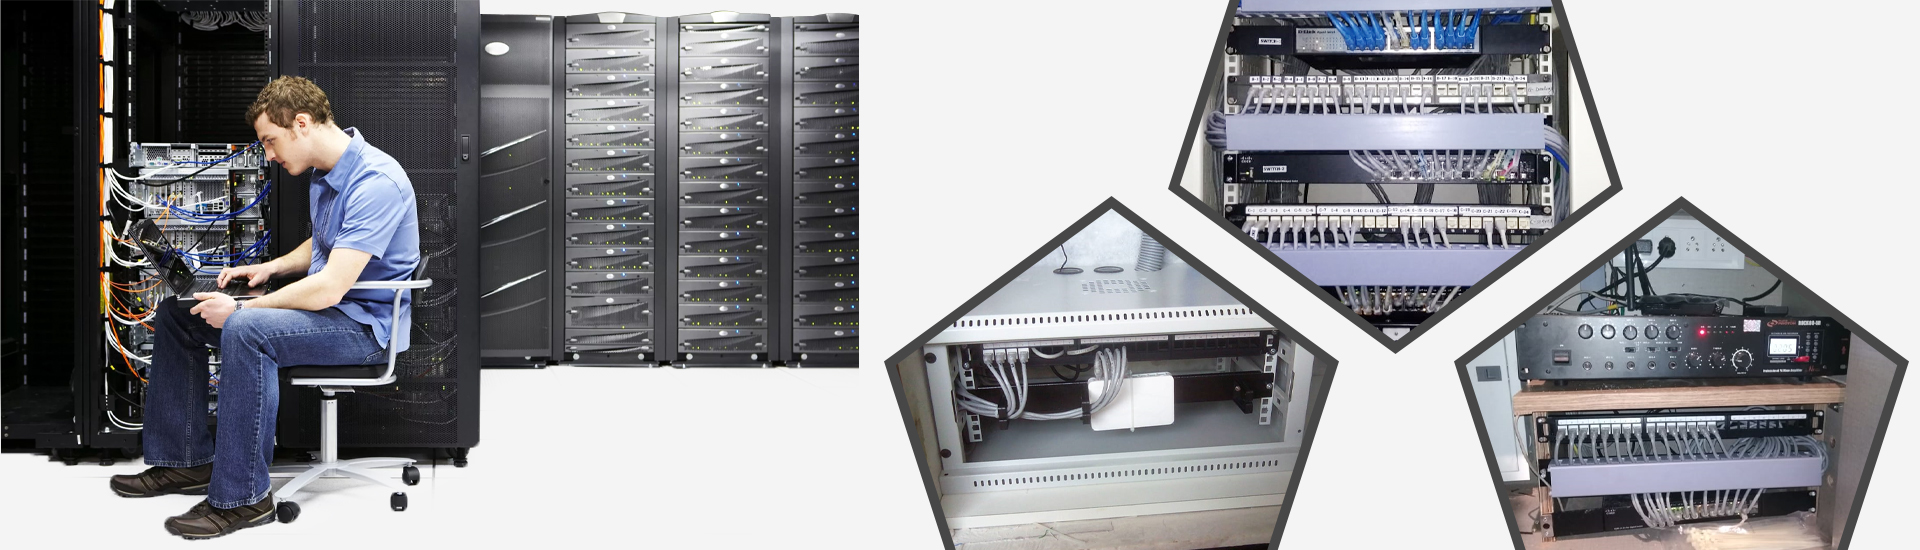 Structured Network Cabling in Surat Gujarat